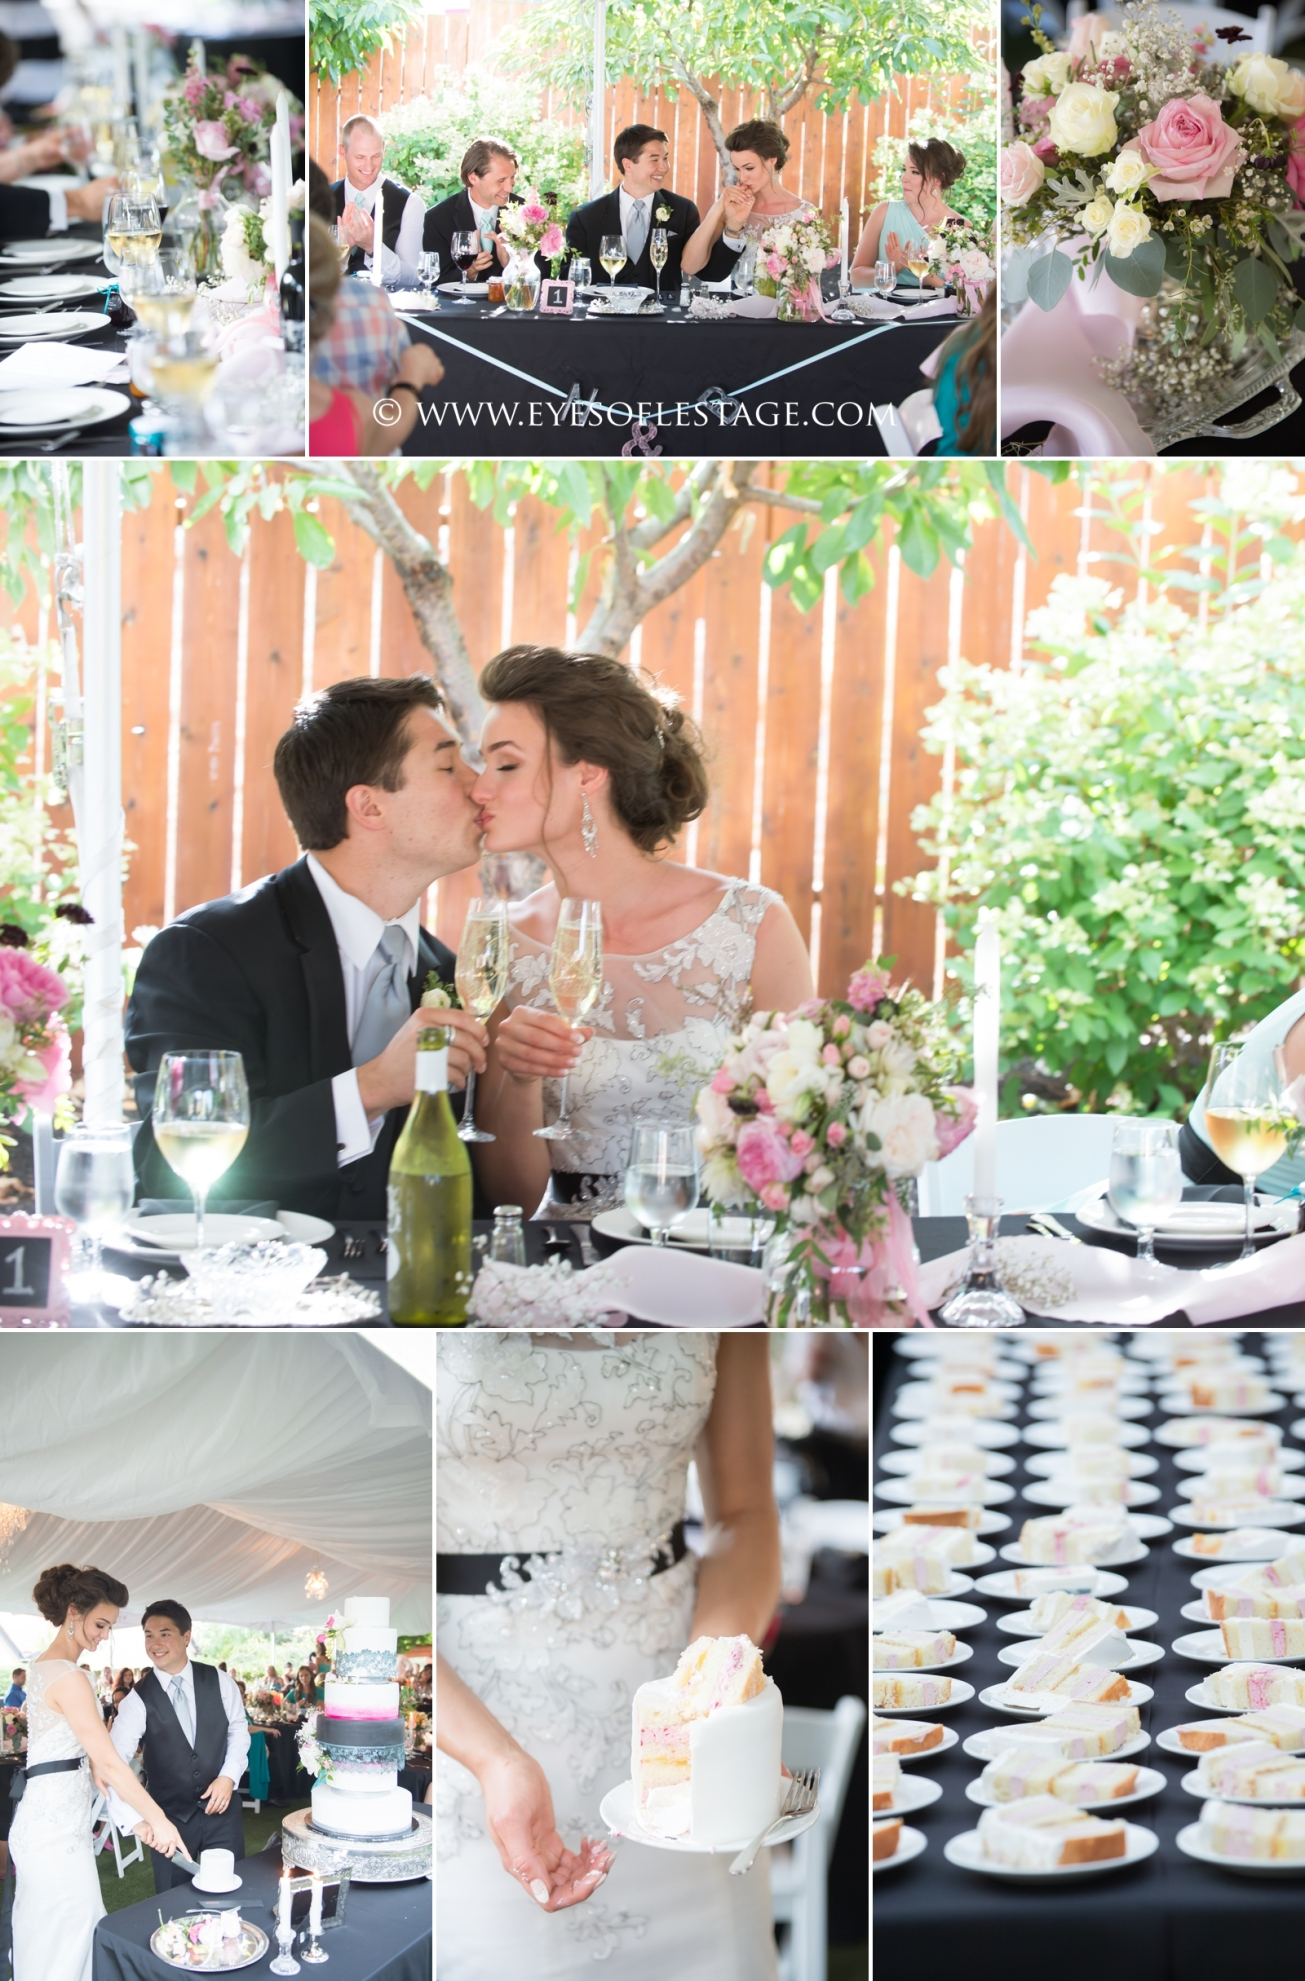 Kelowna Vernon Wedding Photography - Suzanne Le Stage - Durali Villa 14